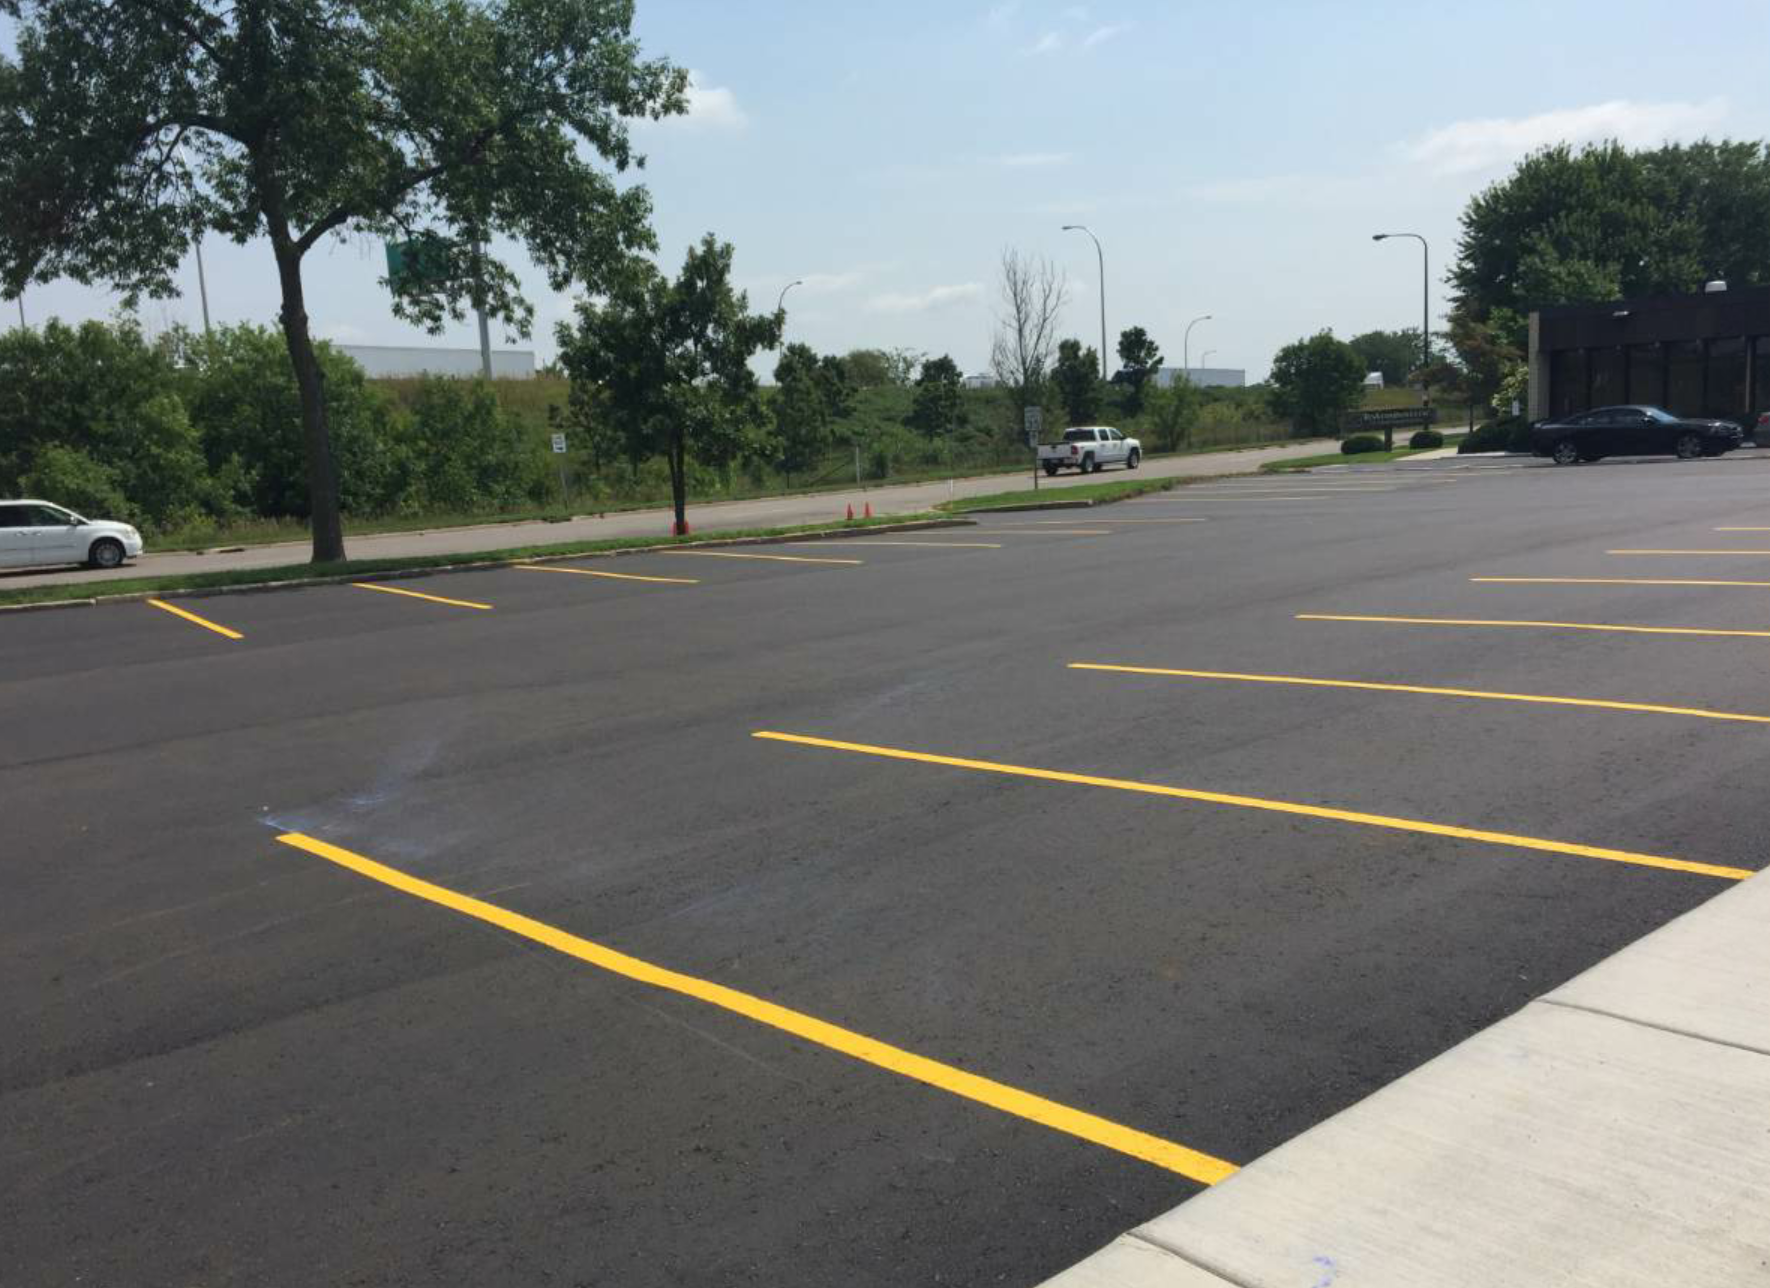 Gasoline, motor oil and other chemicals can wear down the surface of asphalt—particularly in high-traffic parking lots. Tell customers to monitor for any leaks from vehicles. If a spill or leak does occur, tell them to clean it as soon as possible.